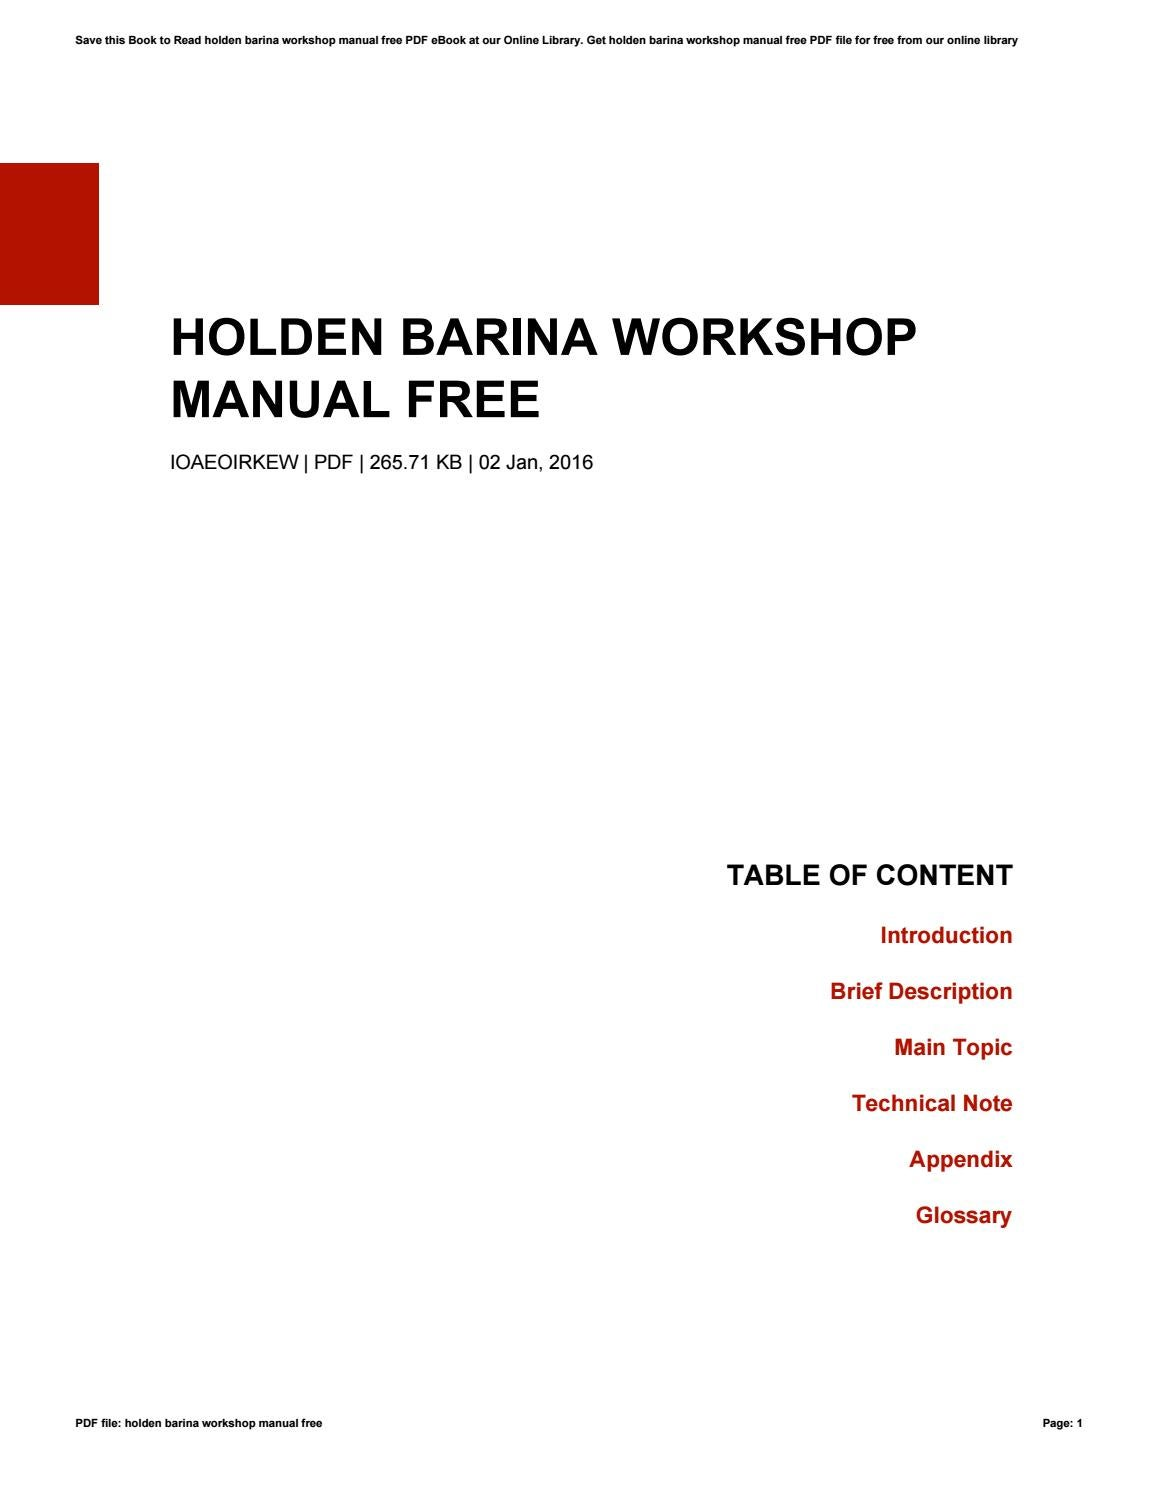 holden barina Array - holden barina xc service manual rh holden barina xc service  manual bitlab solutions